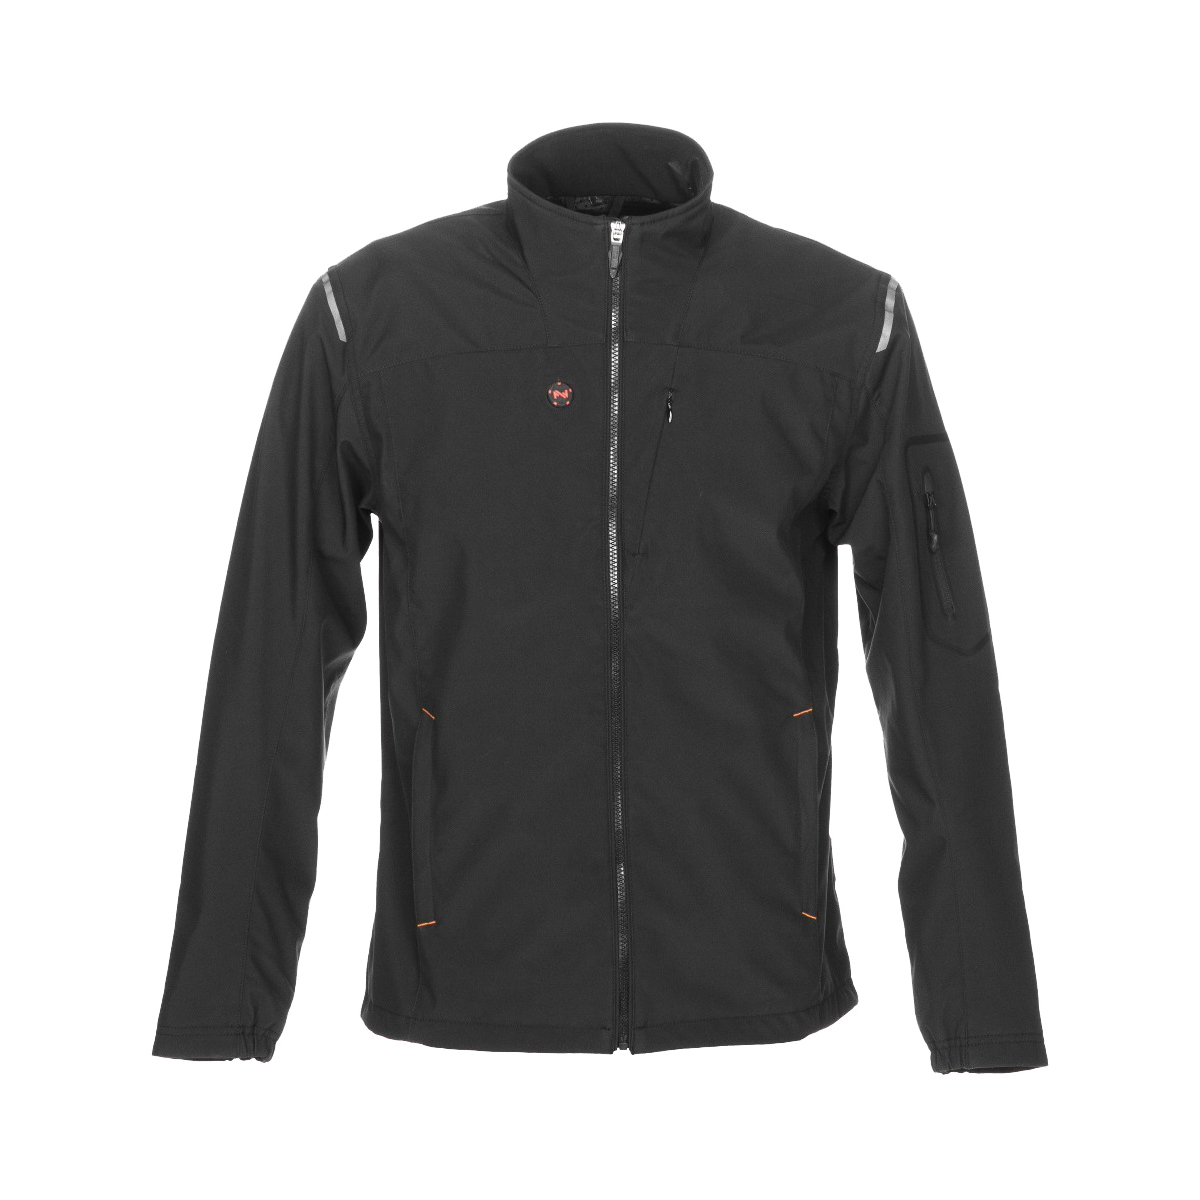 Picture of Mobile Warming MWJ16M07-MD-BLK Heated Jacket, M, Men's, Fits to Chest Size: 40 in, Fabric, Black